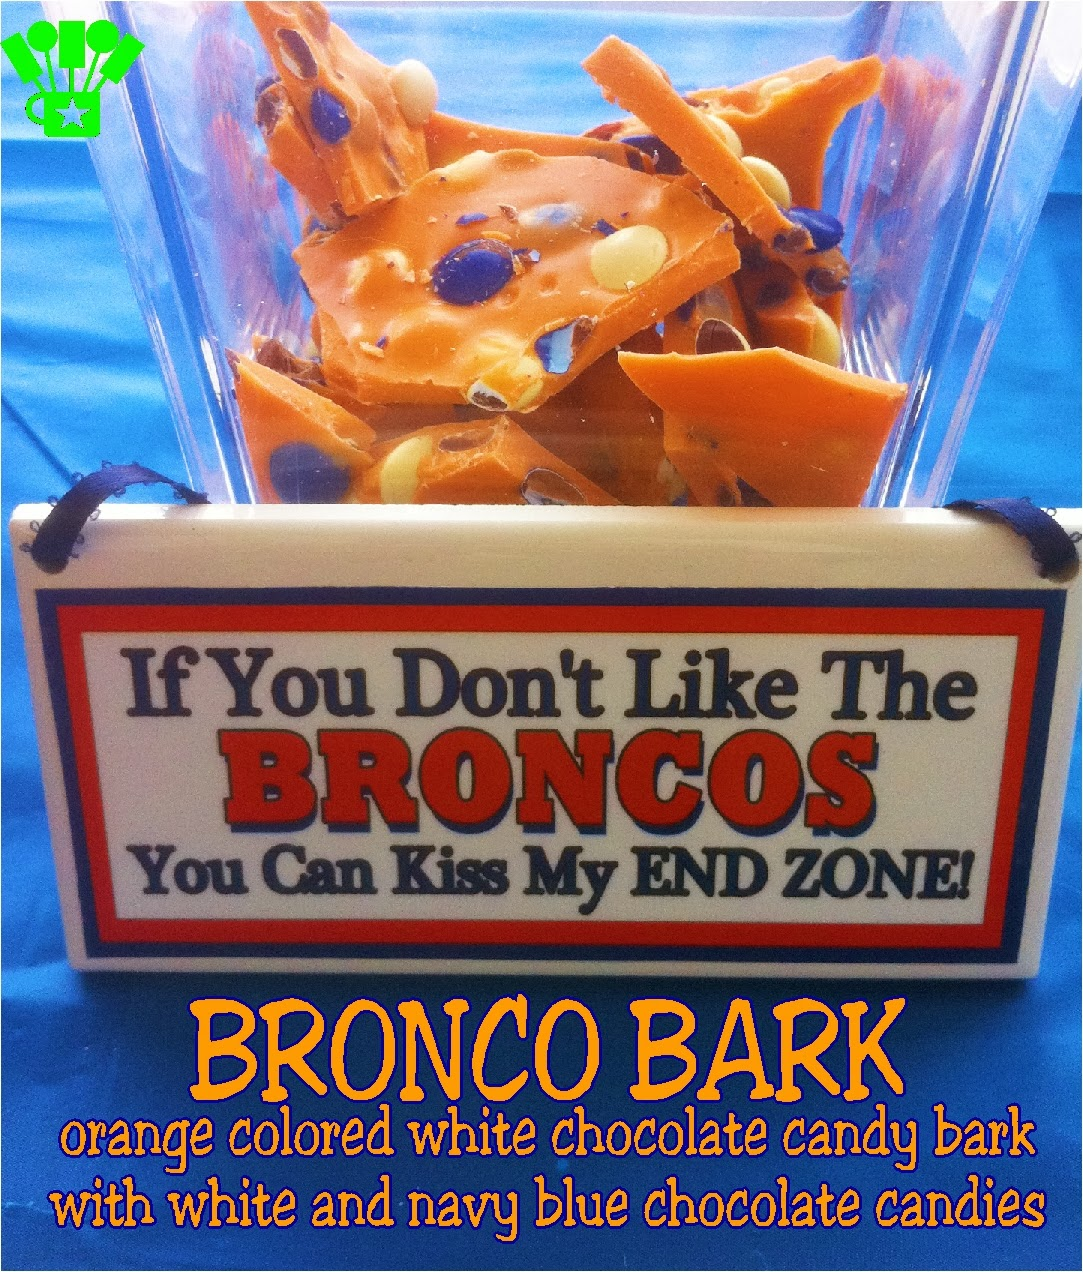 Denver Bronco Candy Bark. An orange colored white chocolate candy bark with white and navy blue chocolate candy pieces.  YUMMY! And great for cheering on the Broncos #Broncos #Candy #SuperBowl